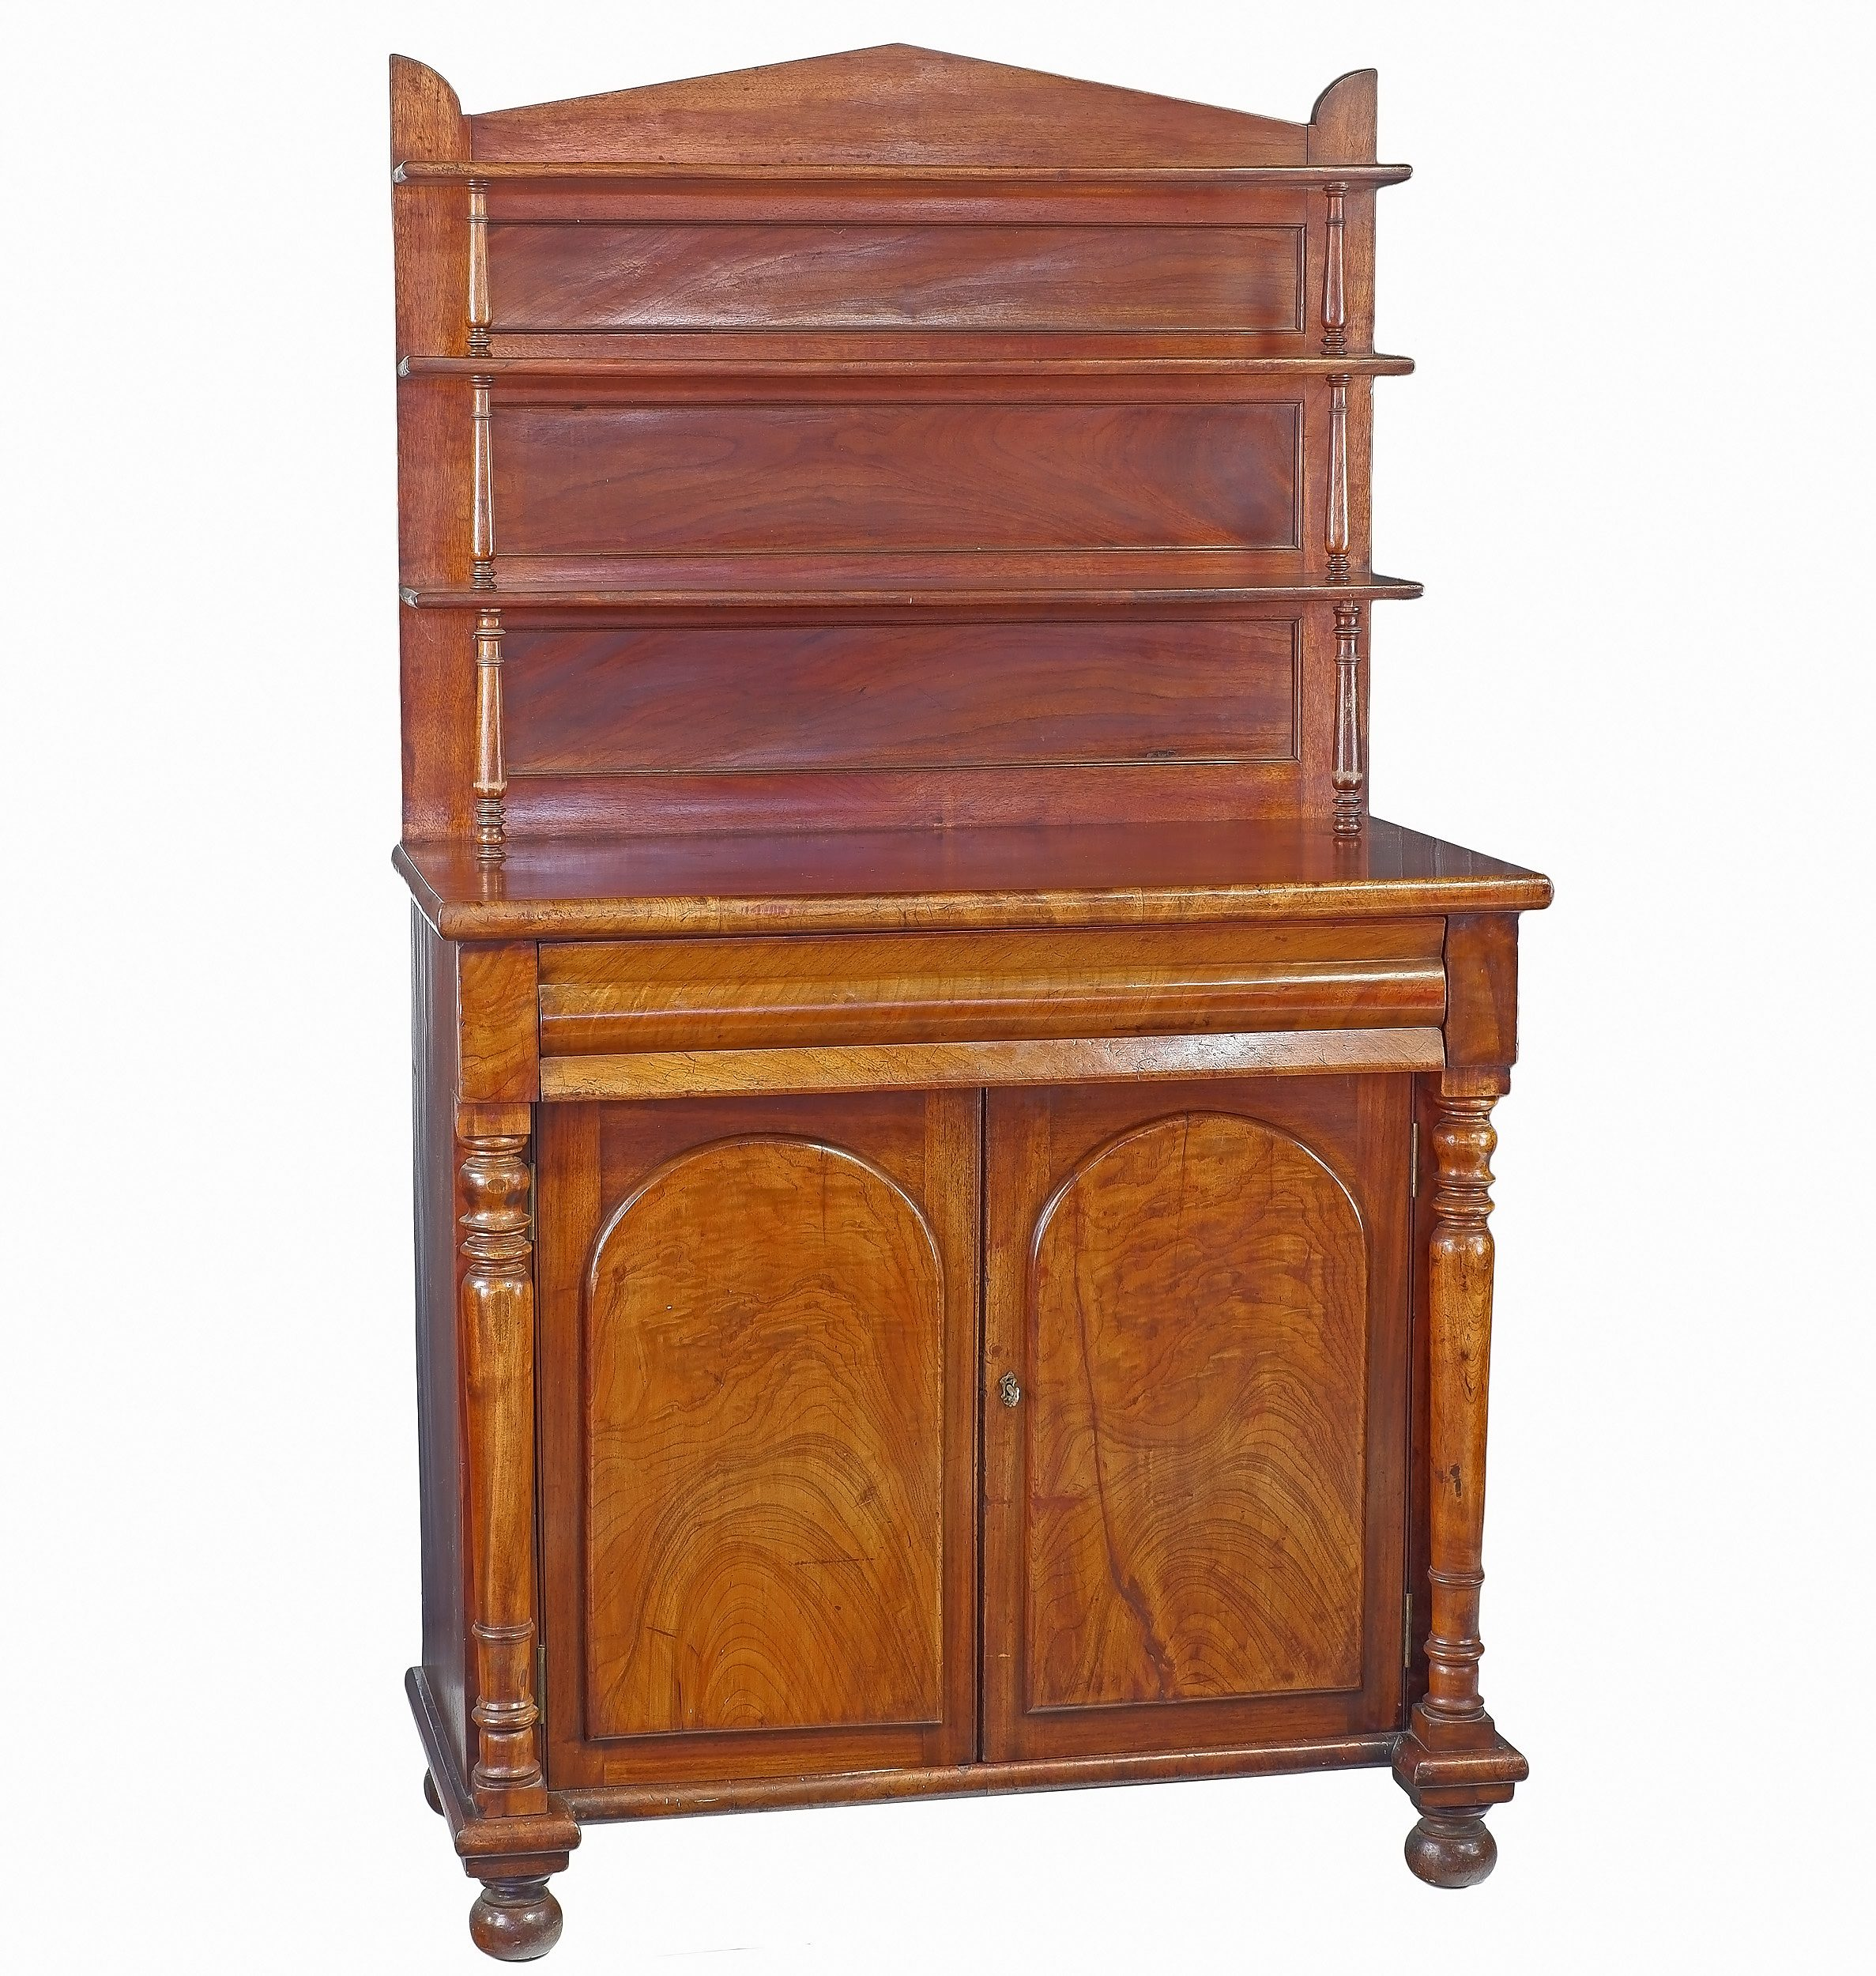 'Fine Australian Cedar Chiffonier with Palladian Back and Open Shelves Circa 1845 Probably NSW (Sydney)'